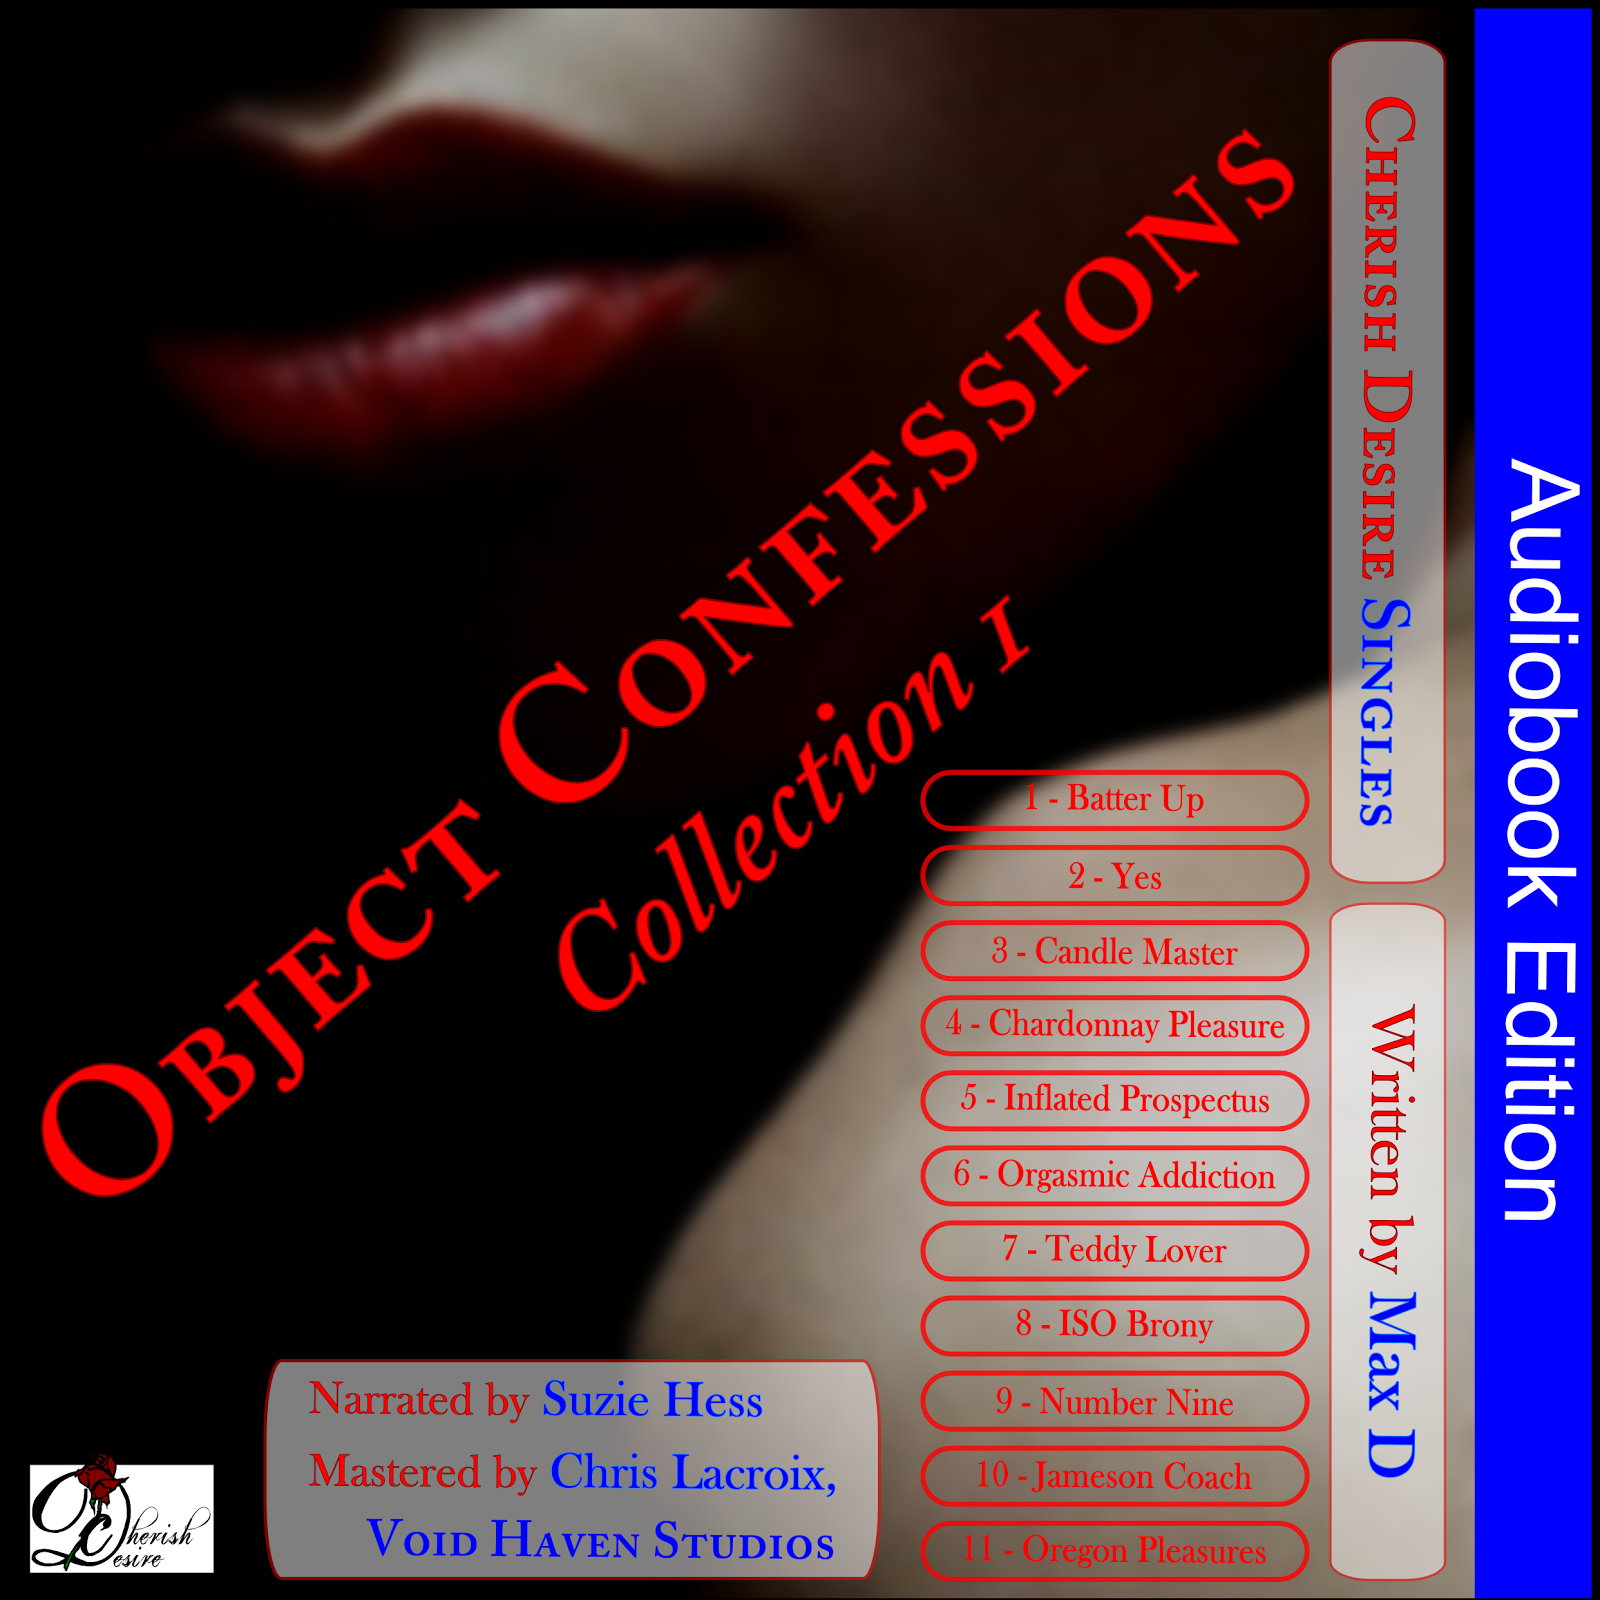 Cherish Desire Singles: Object Confessions Collection 1 Audiobook, Max D, erotica